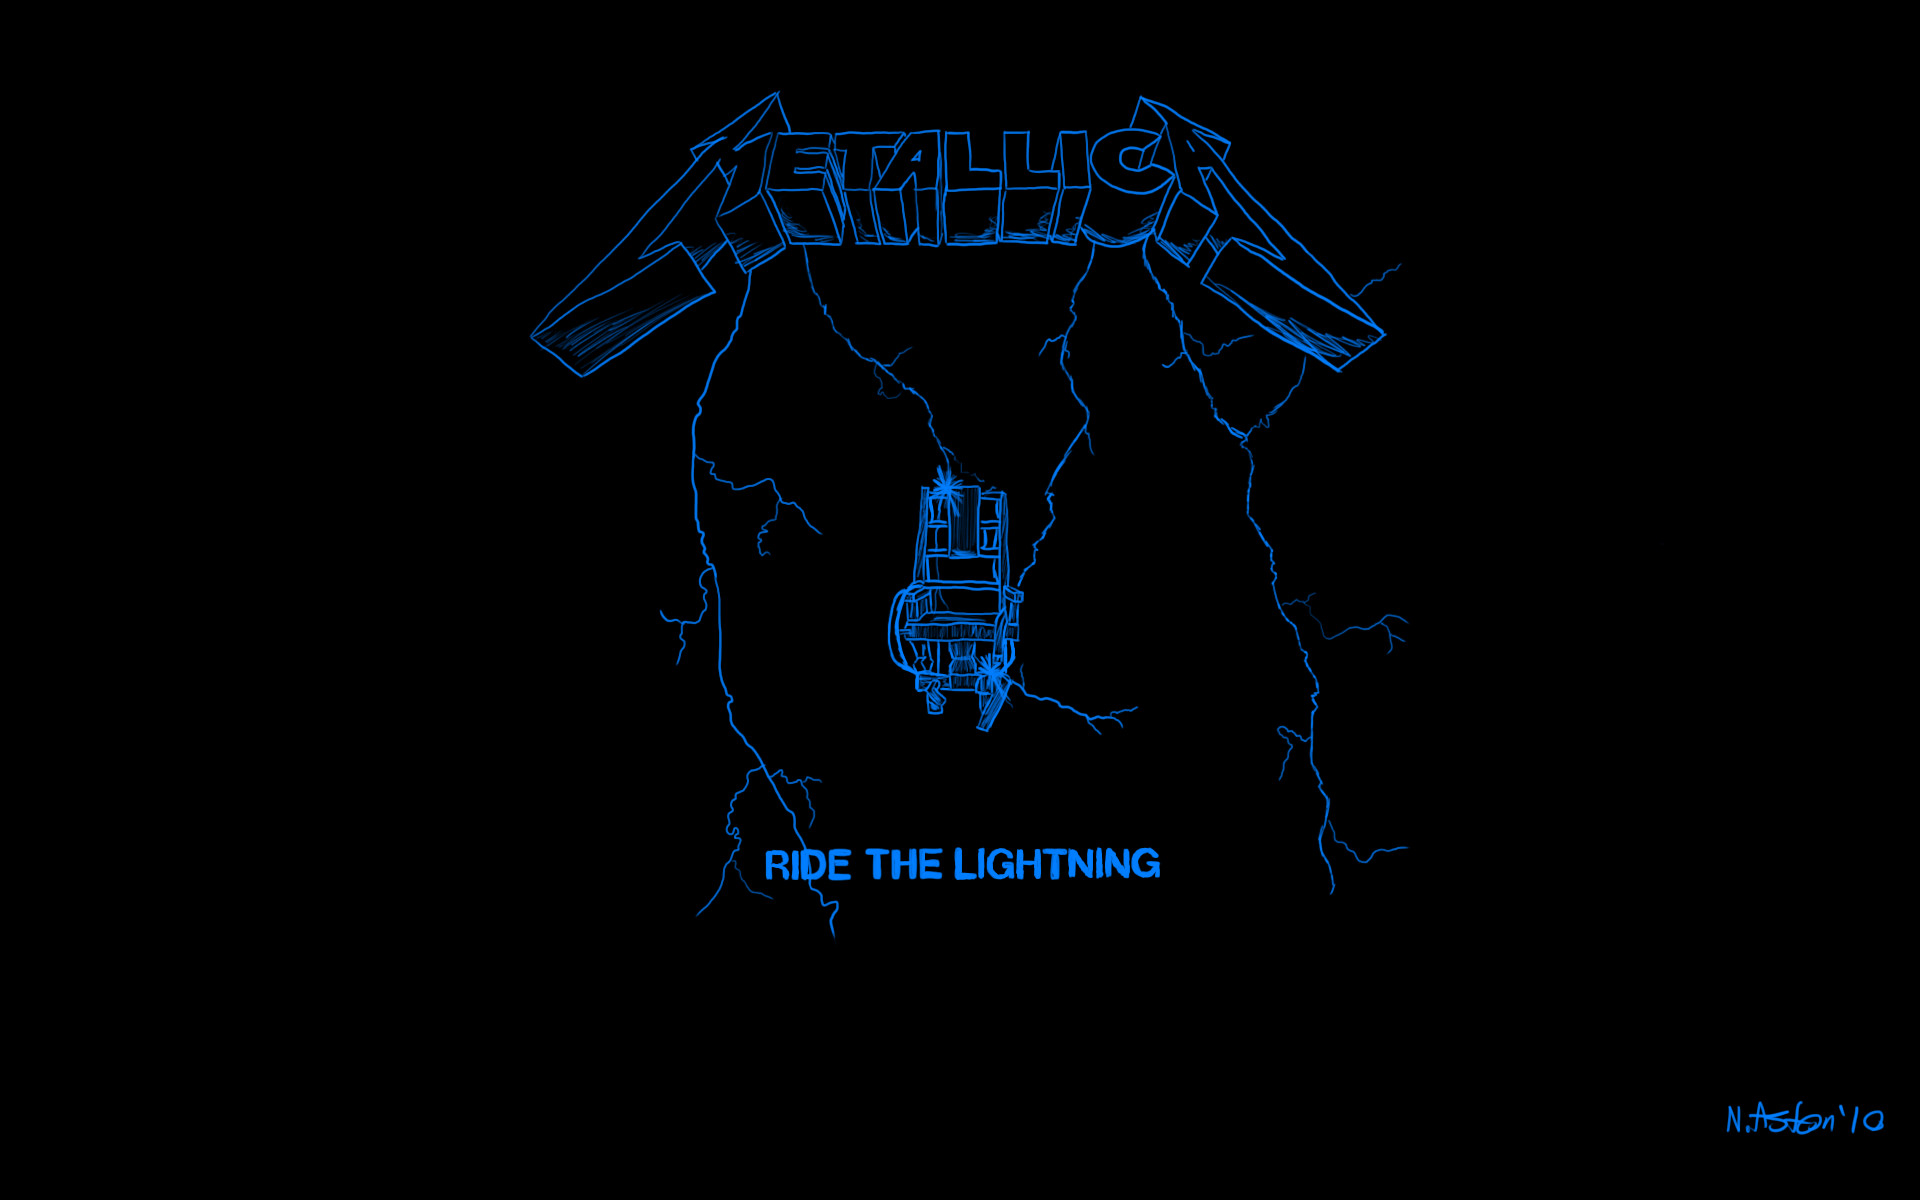 Ride The Lightning Wallpaper by nige111 Ride The Lightning Wallpaper by  nige111